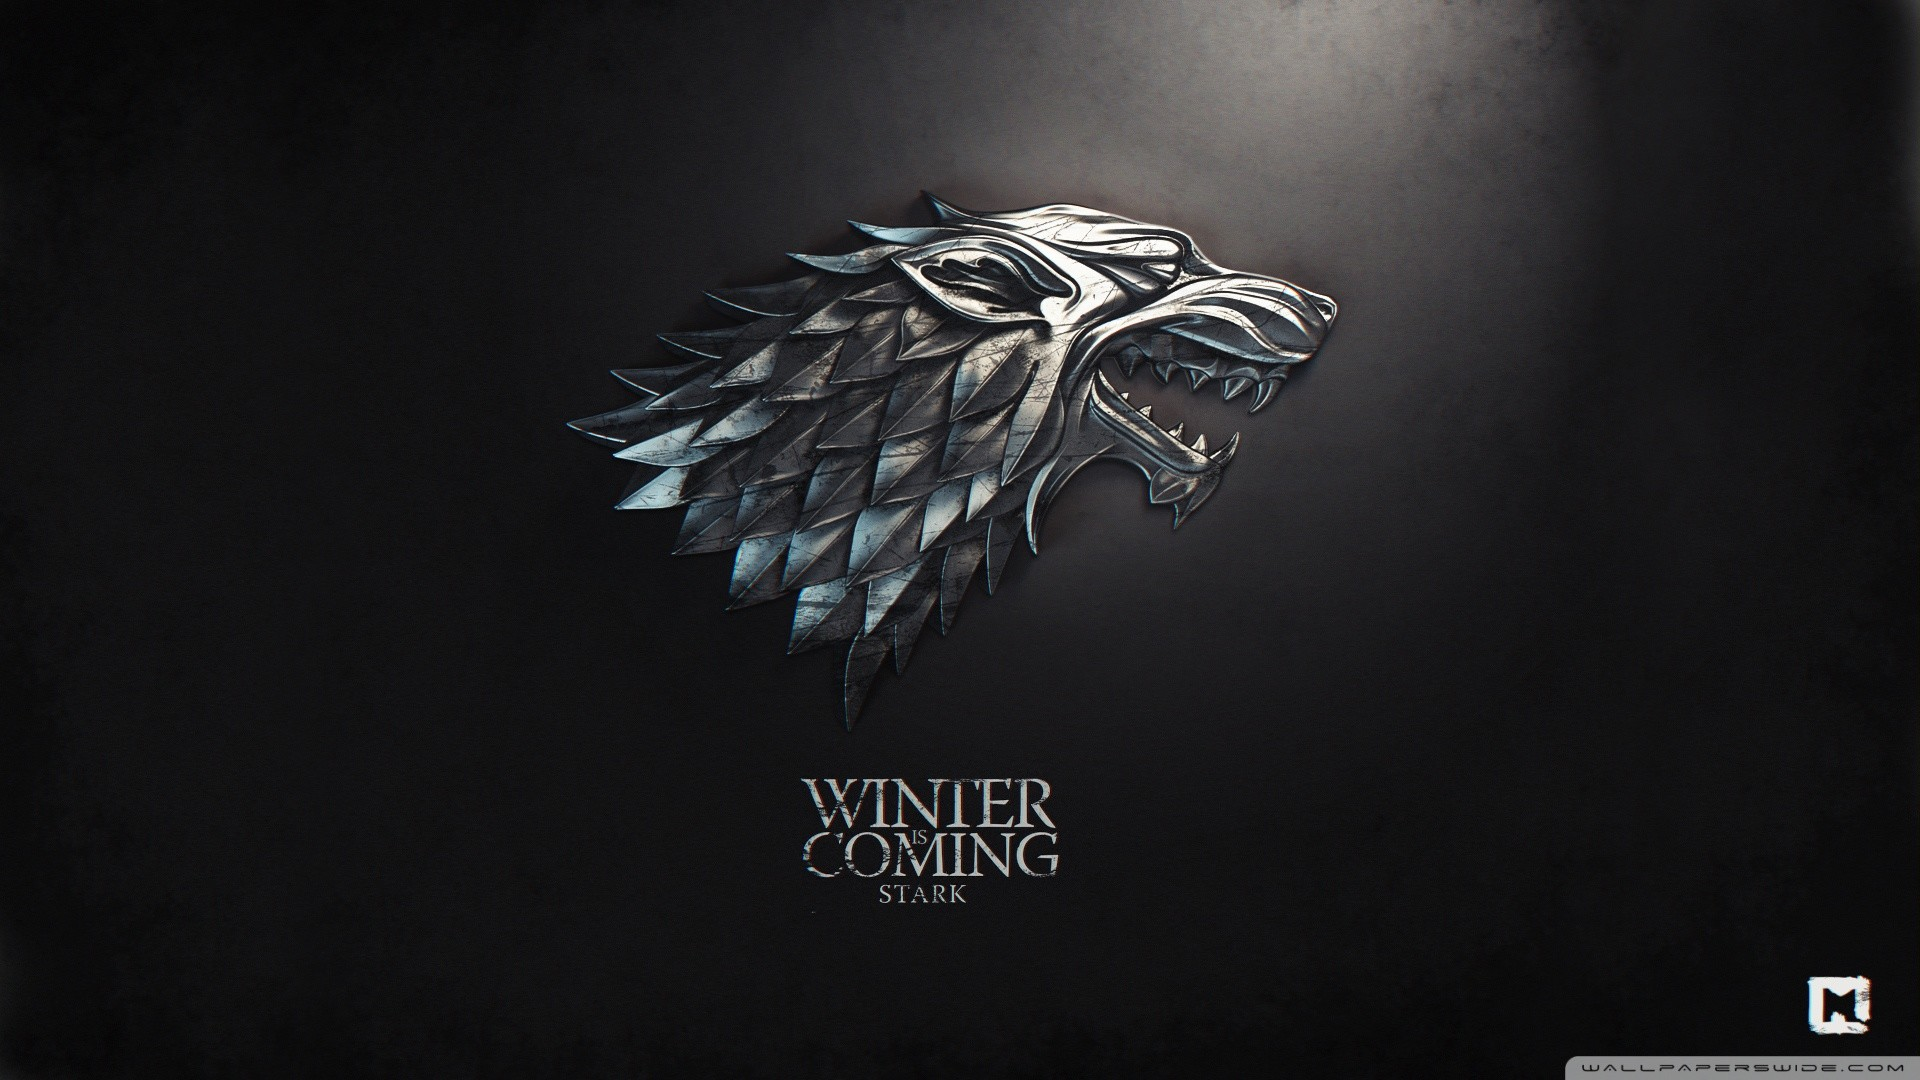 Game Of Thrones Winter Is Coming Stark HD Wide Wallpaper for Widescreen